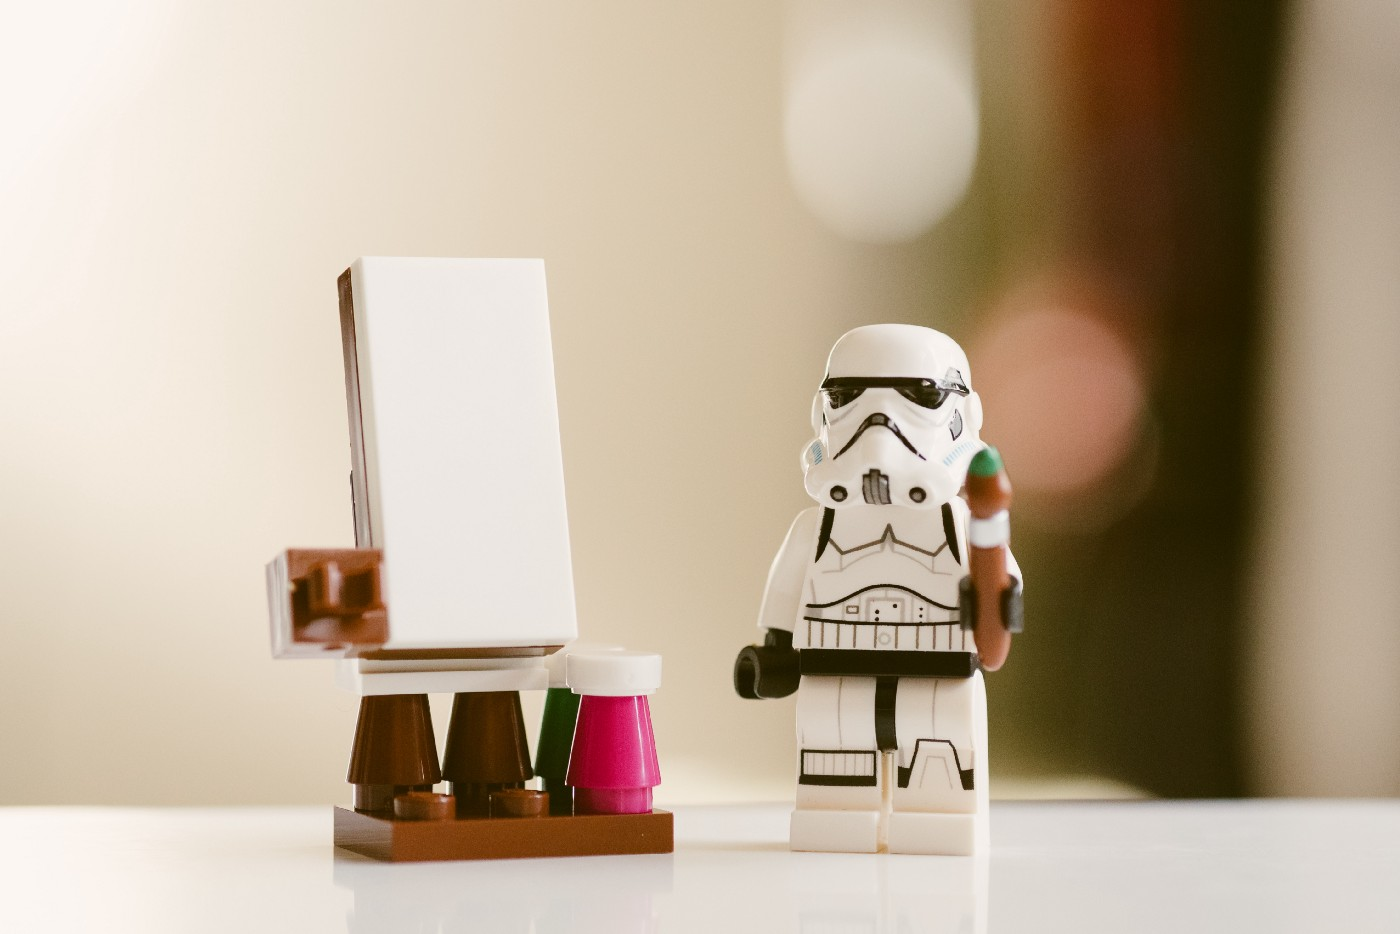 A Lego Star Wars character holding a paint brush and standing at an easel.